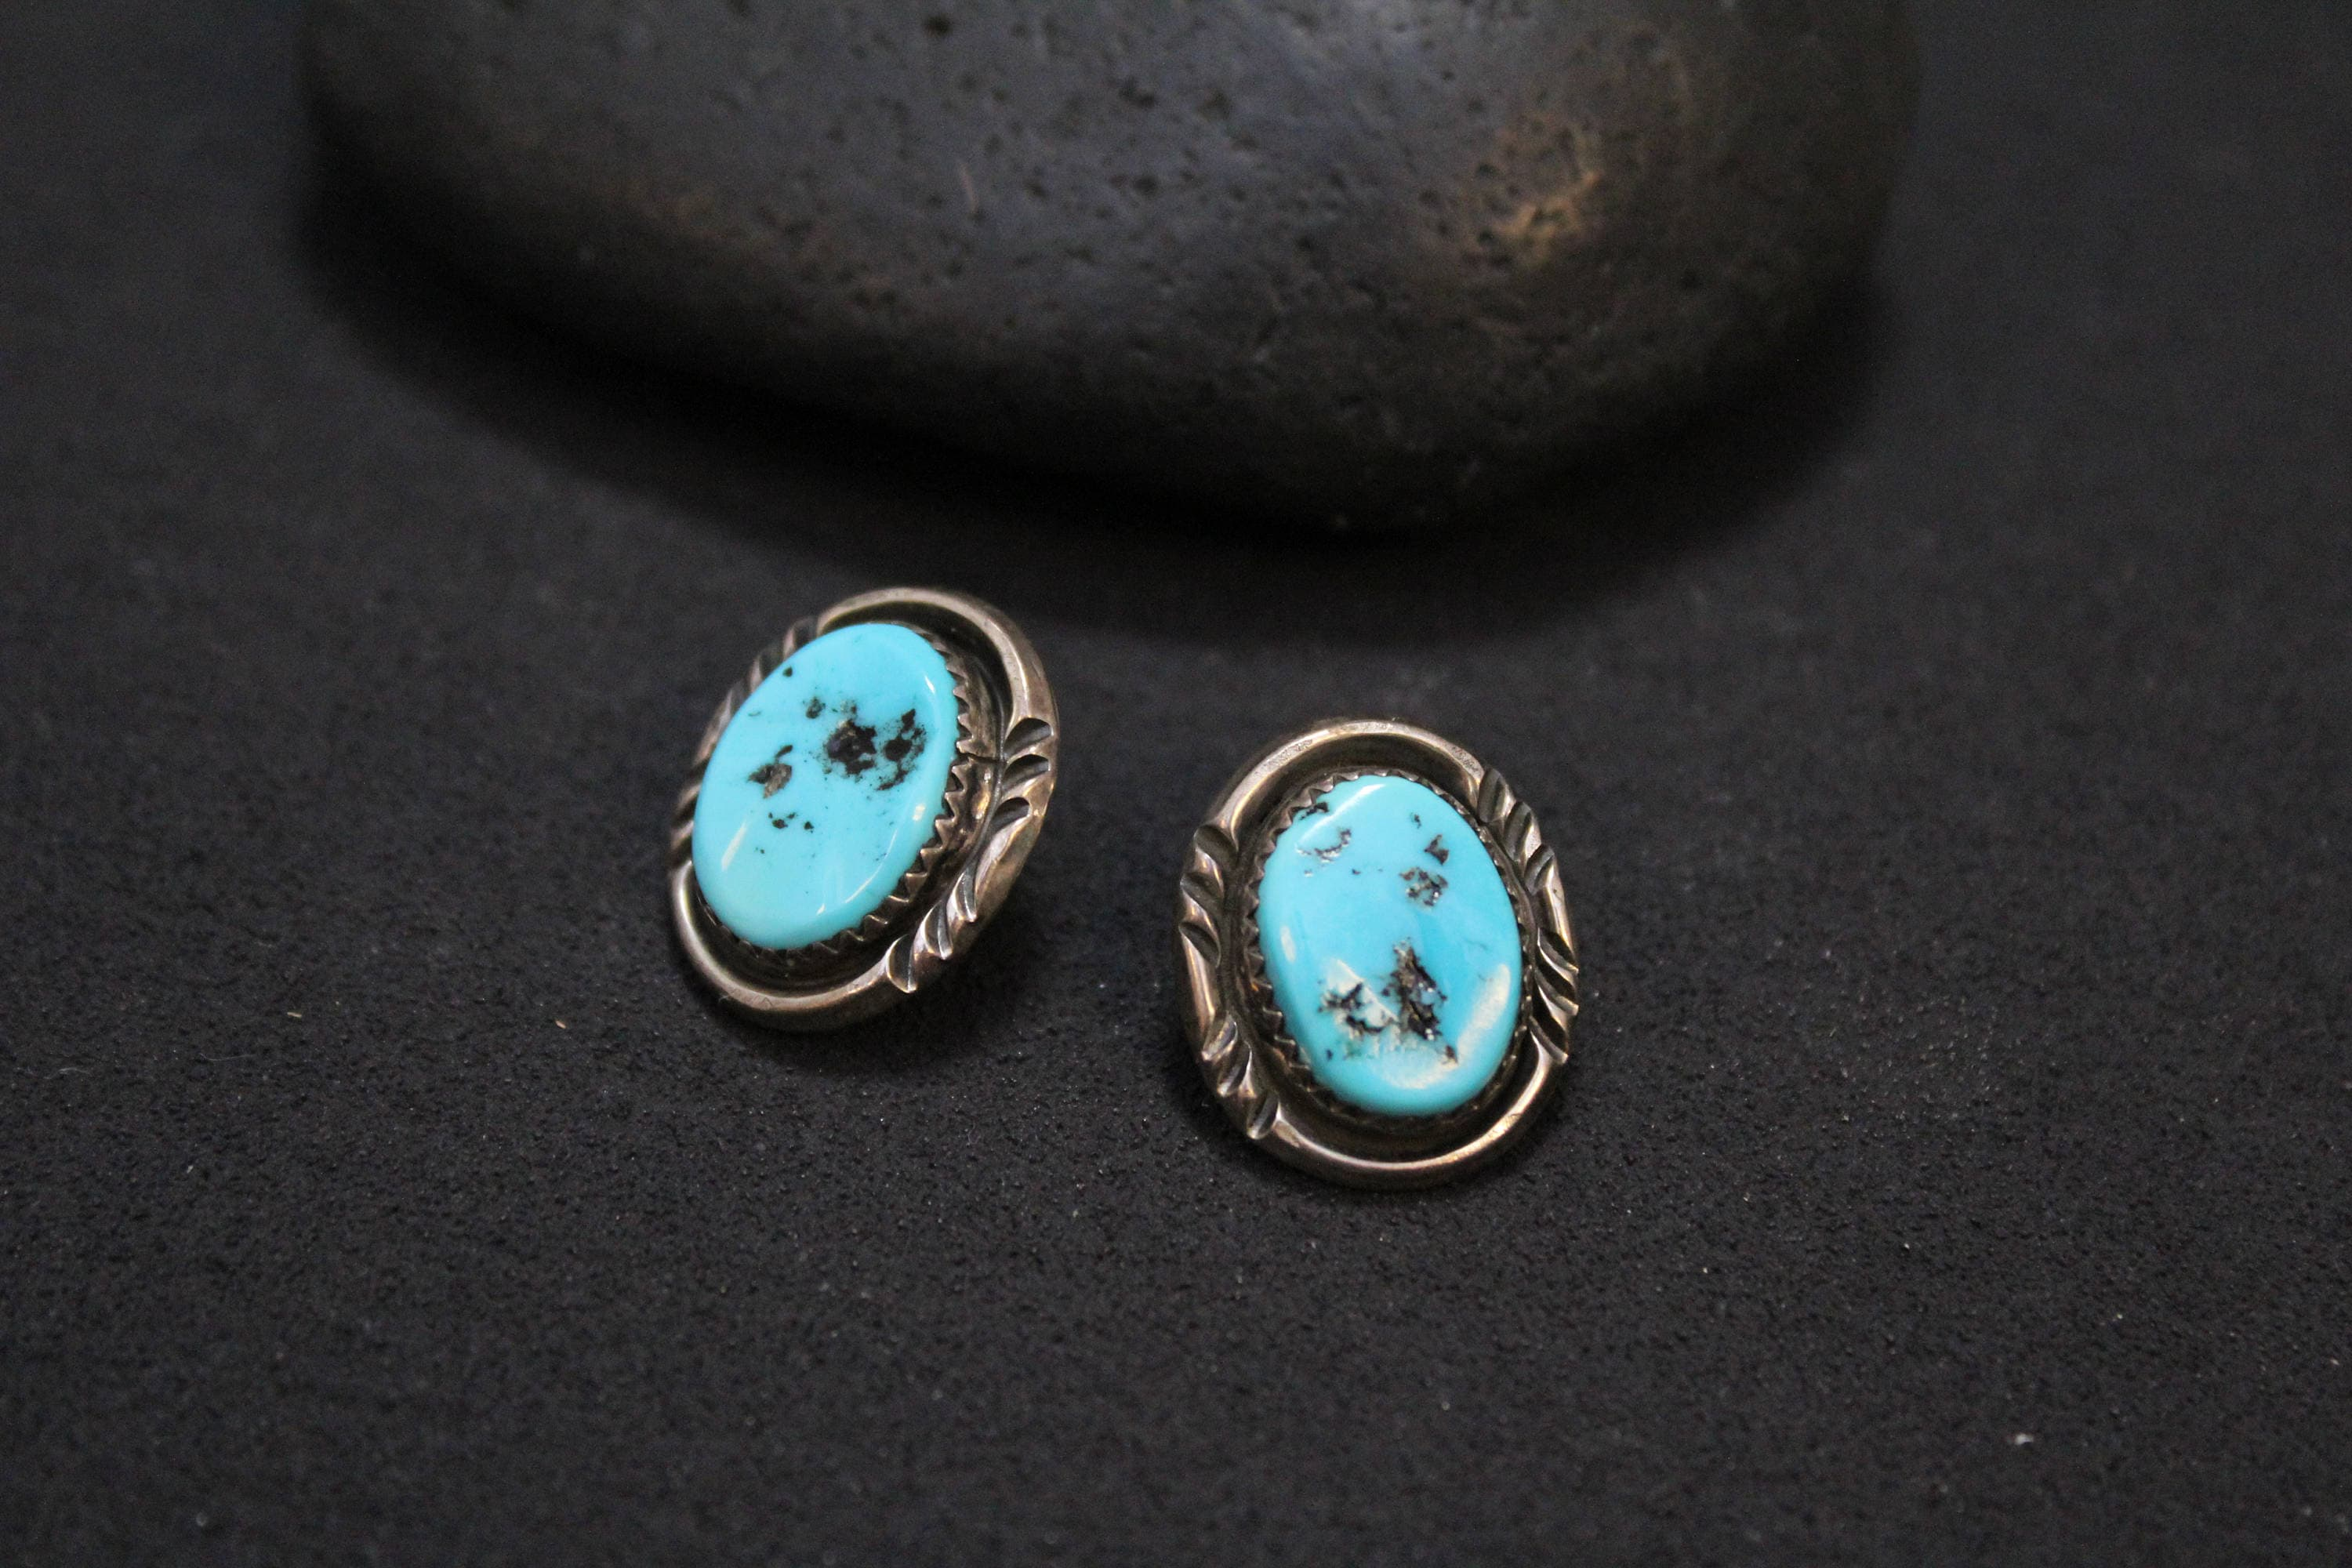 beauty stud dsc earrings copy turquoise yee products designs sleeping song